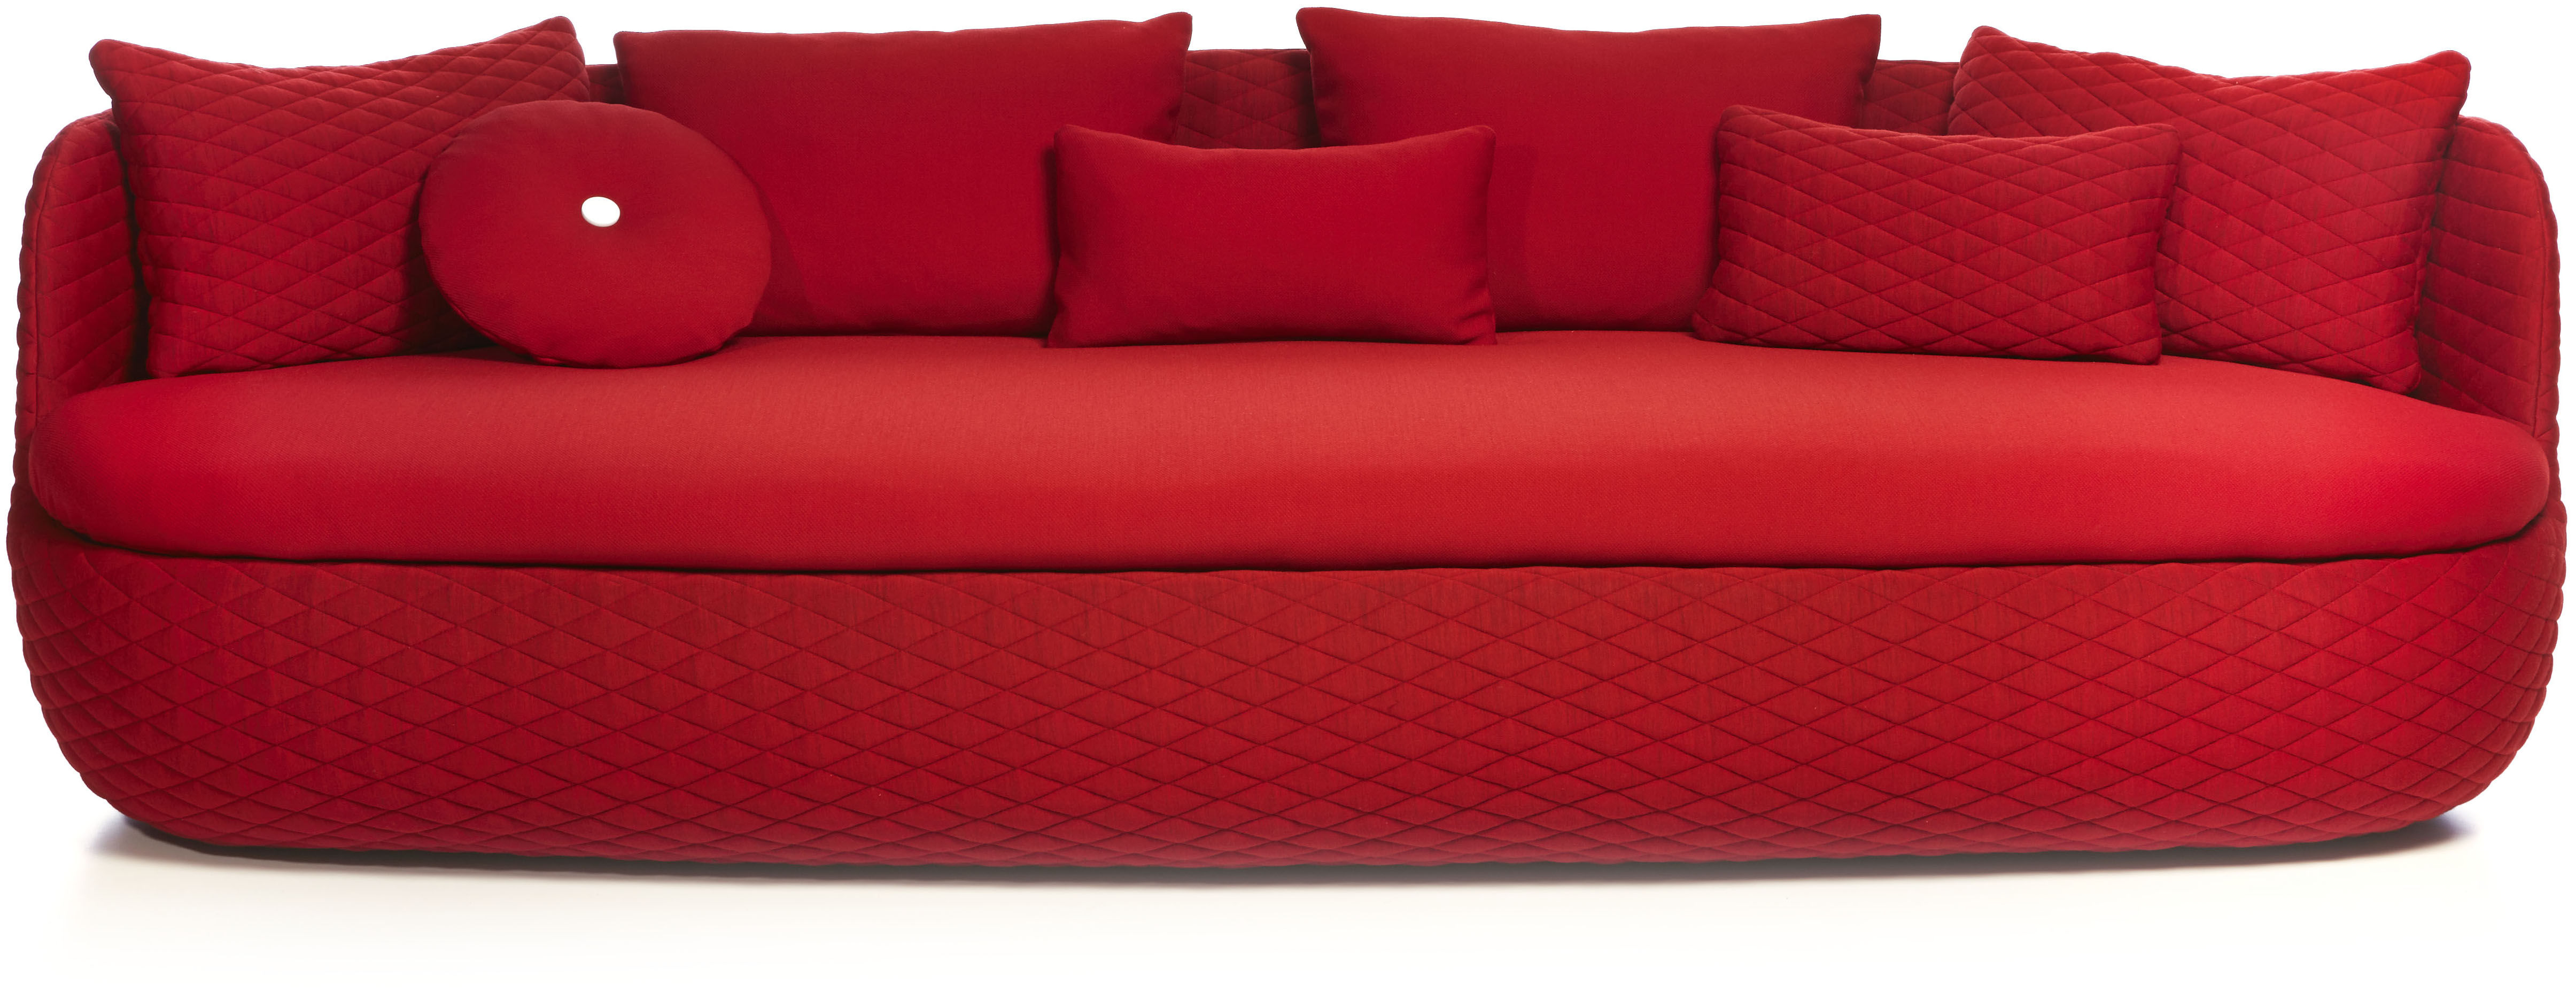 Bart straight sofa passion red by moooi for Sofa 70 cm deep